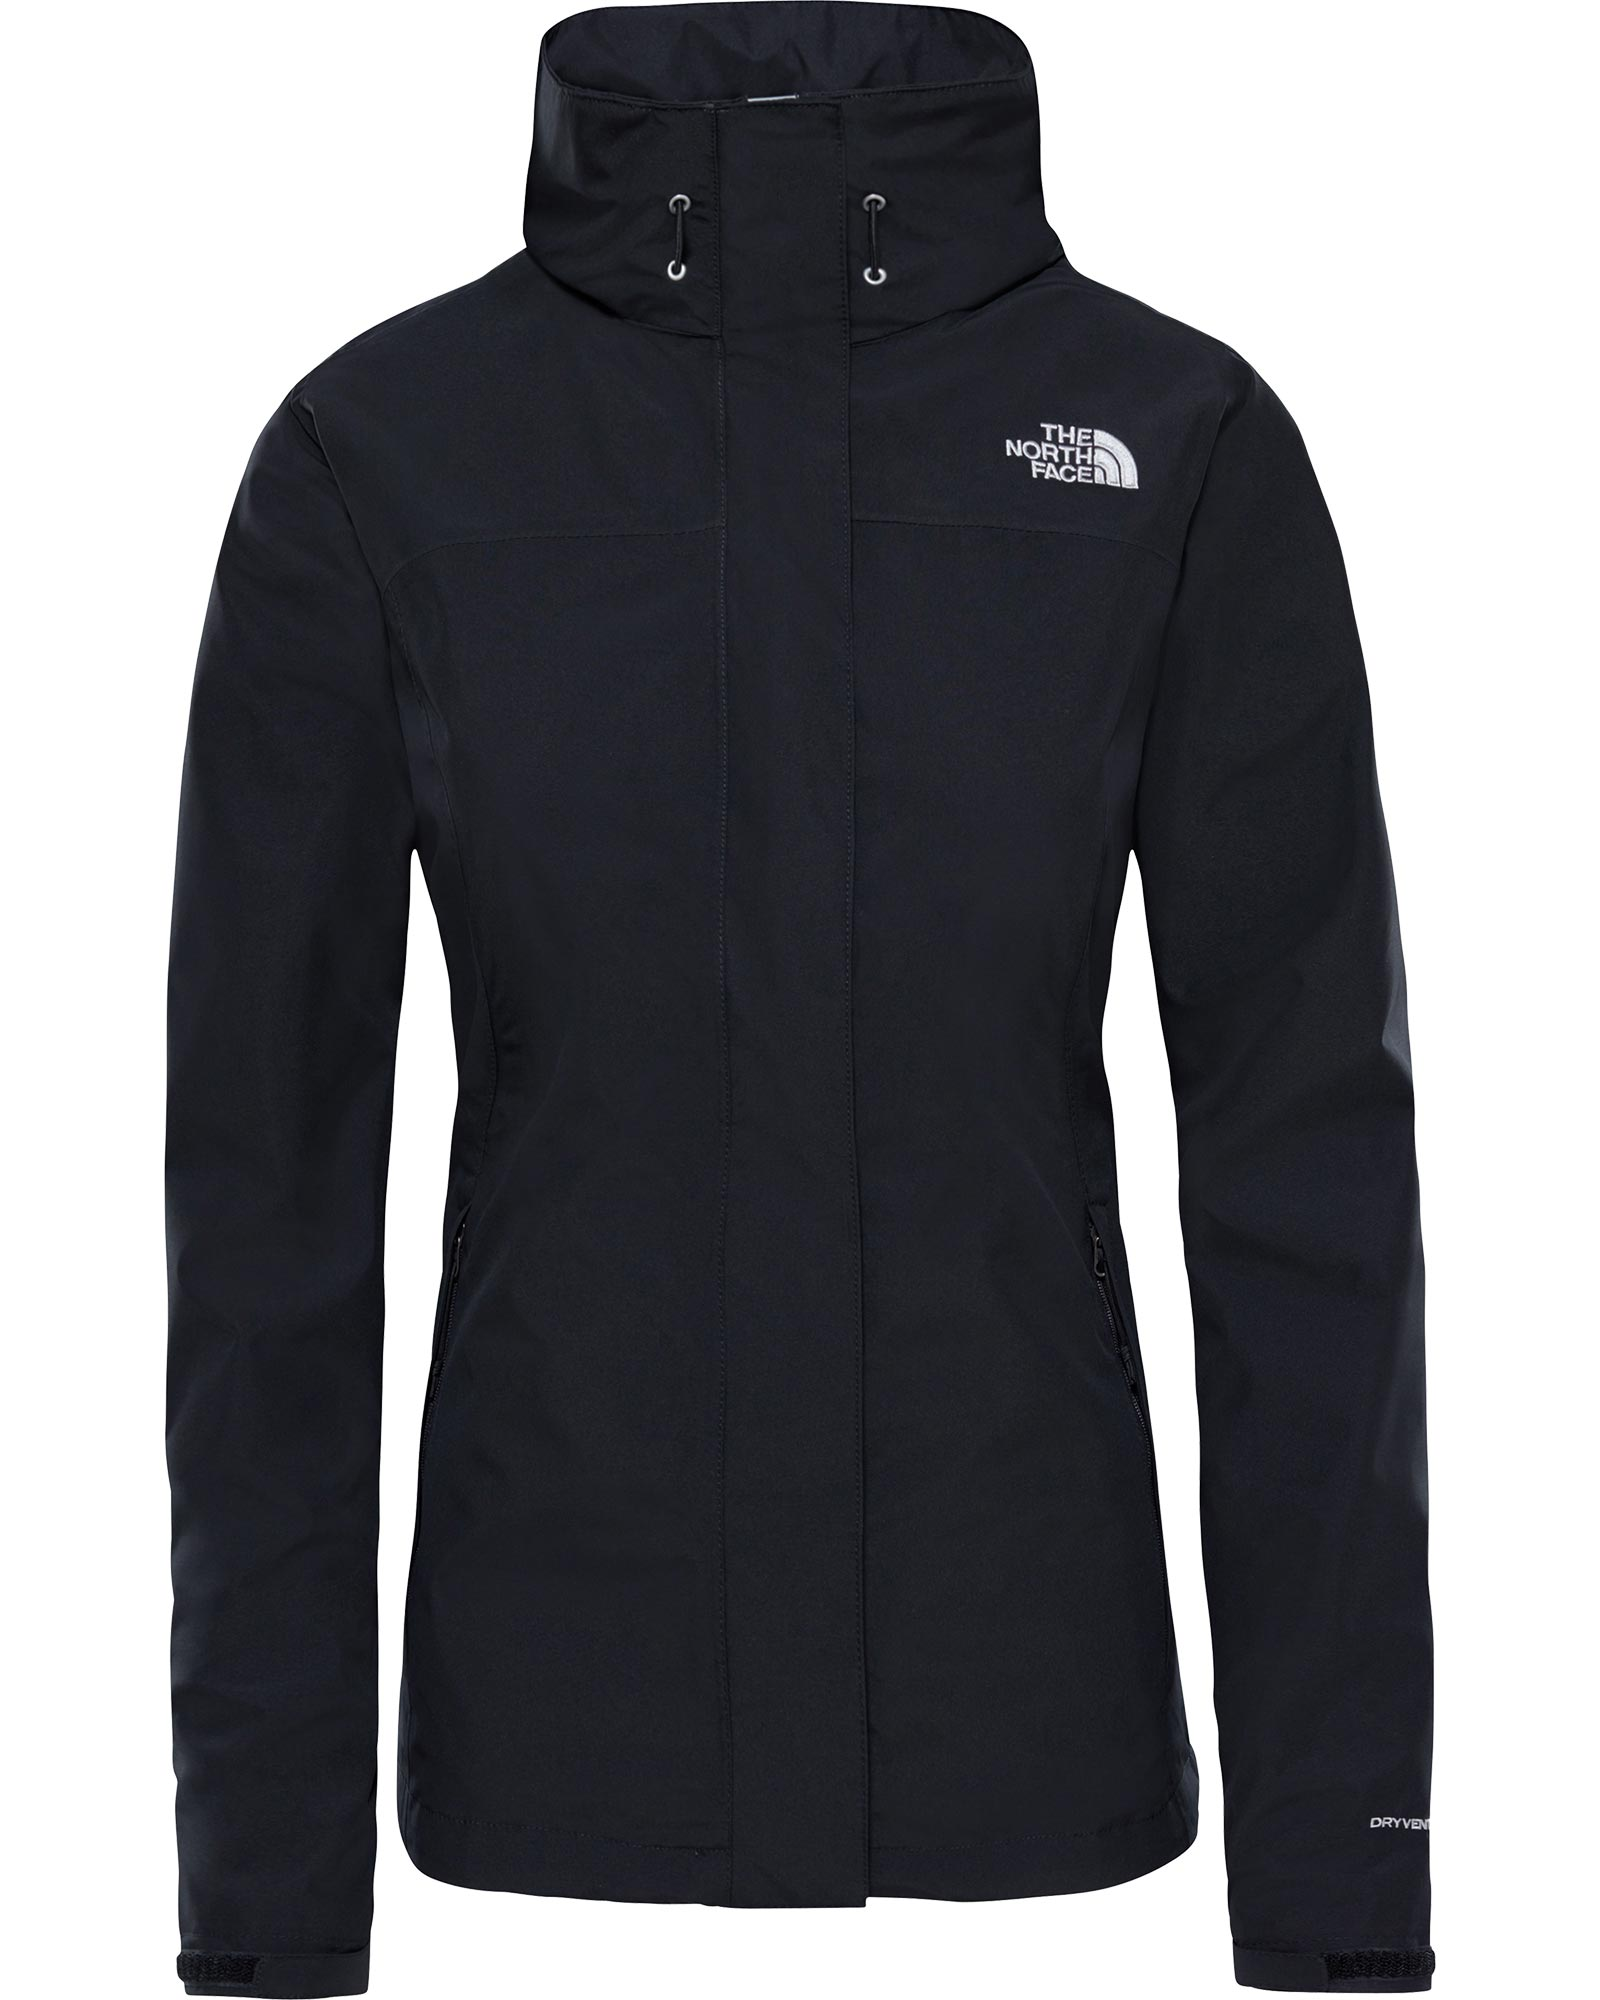 The North Face Women's Sangro DryVent Jacket 0